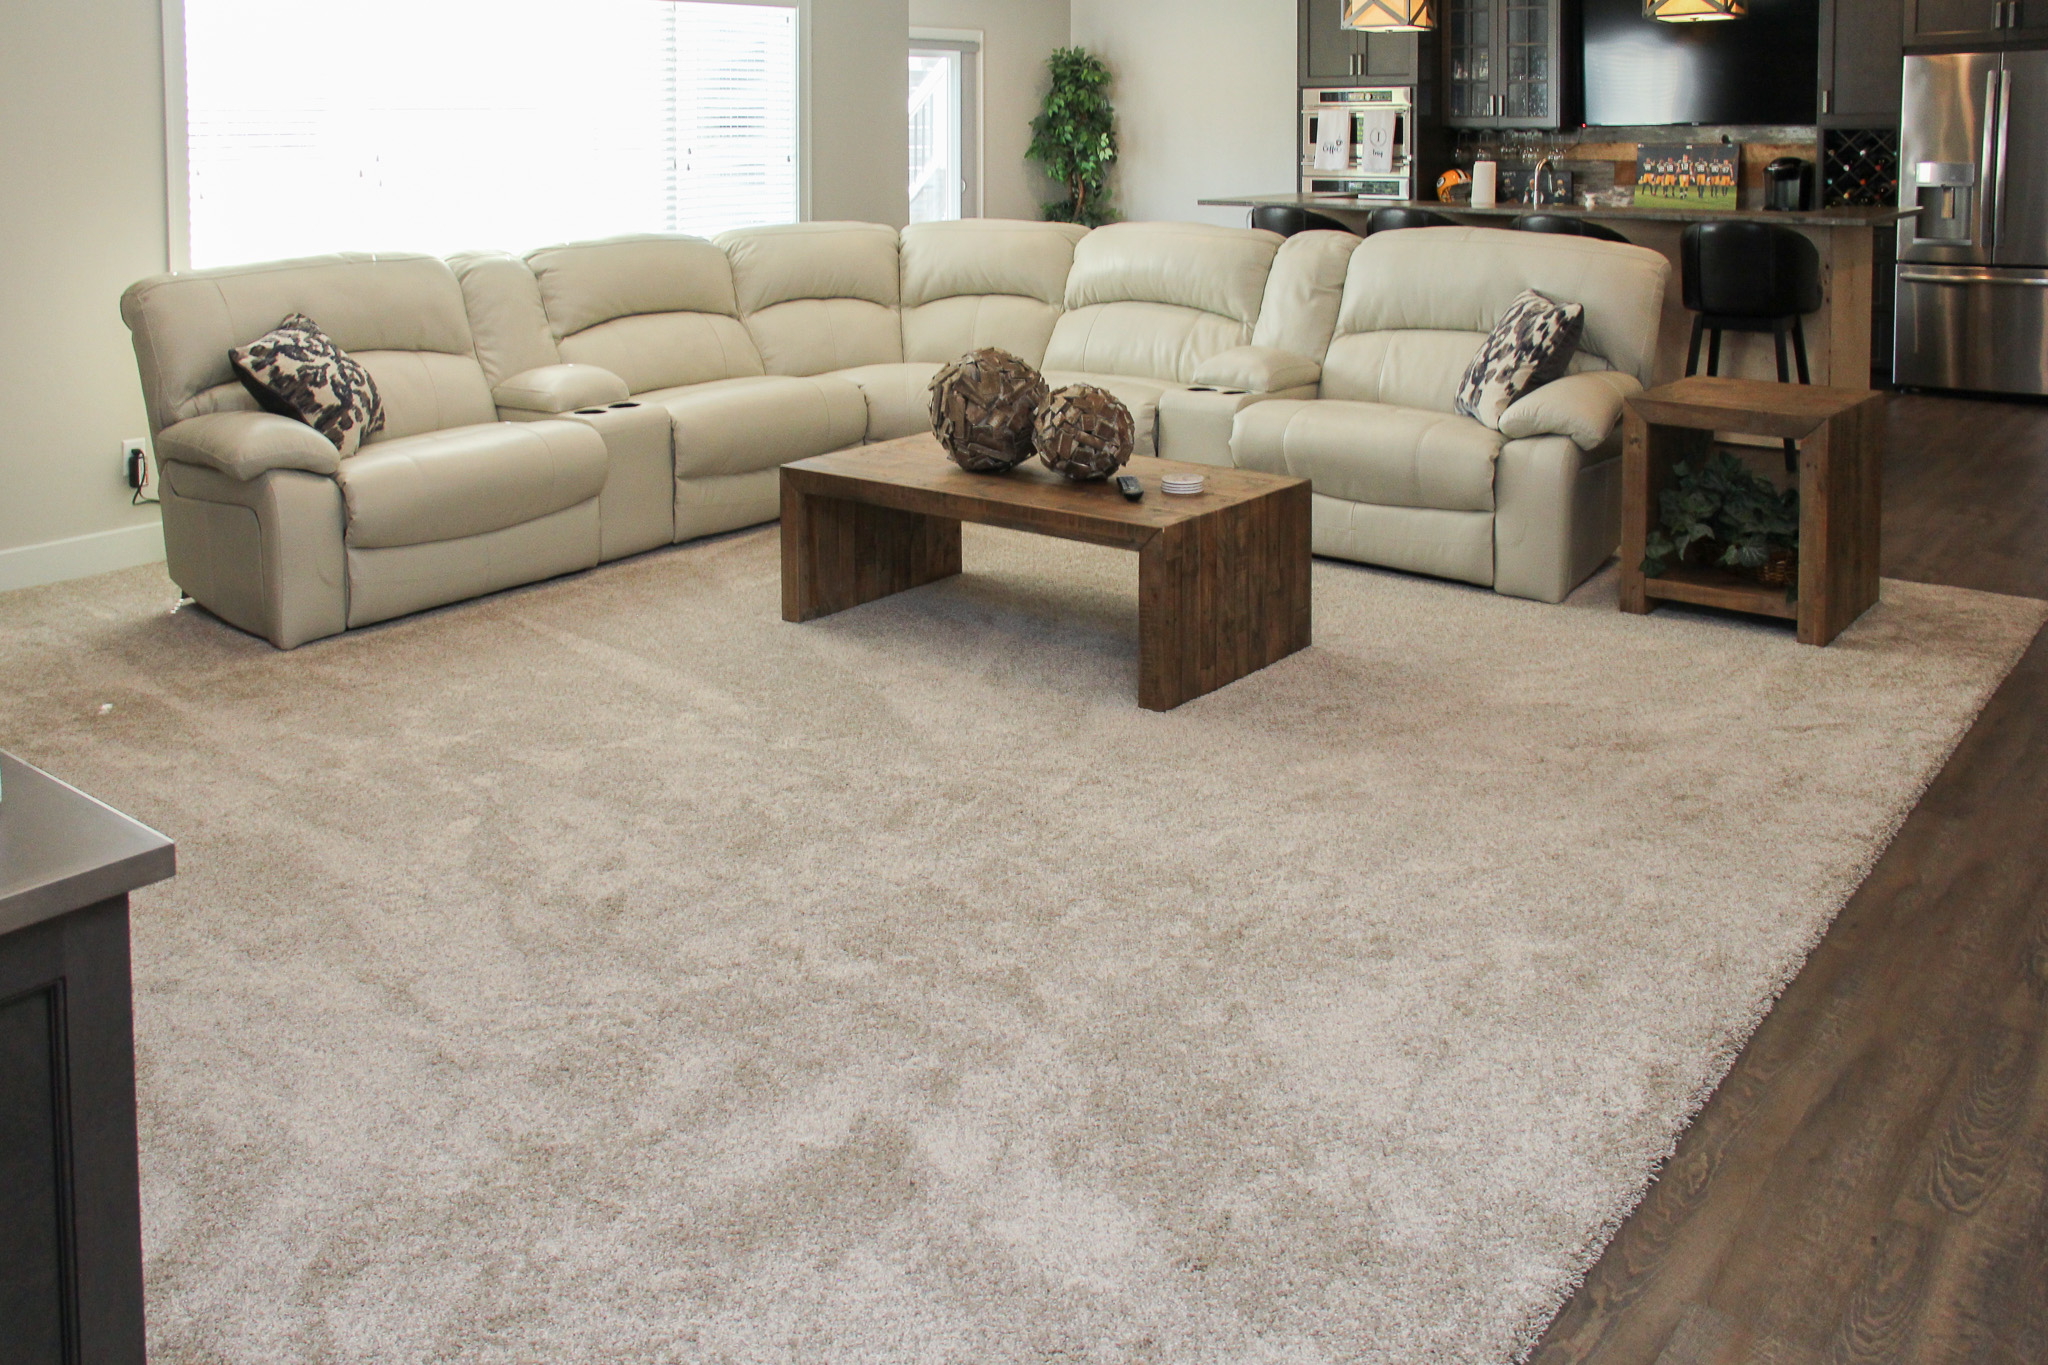 Flooring To Warm Up Your Home   H.J. Martin and Son